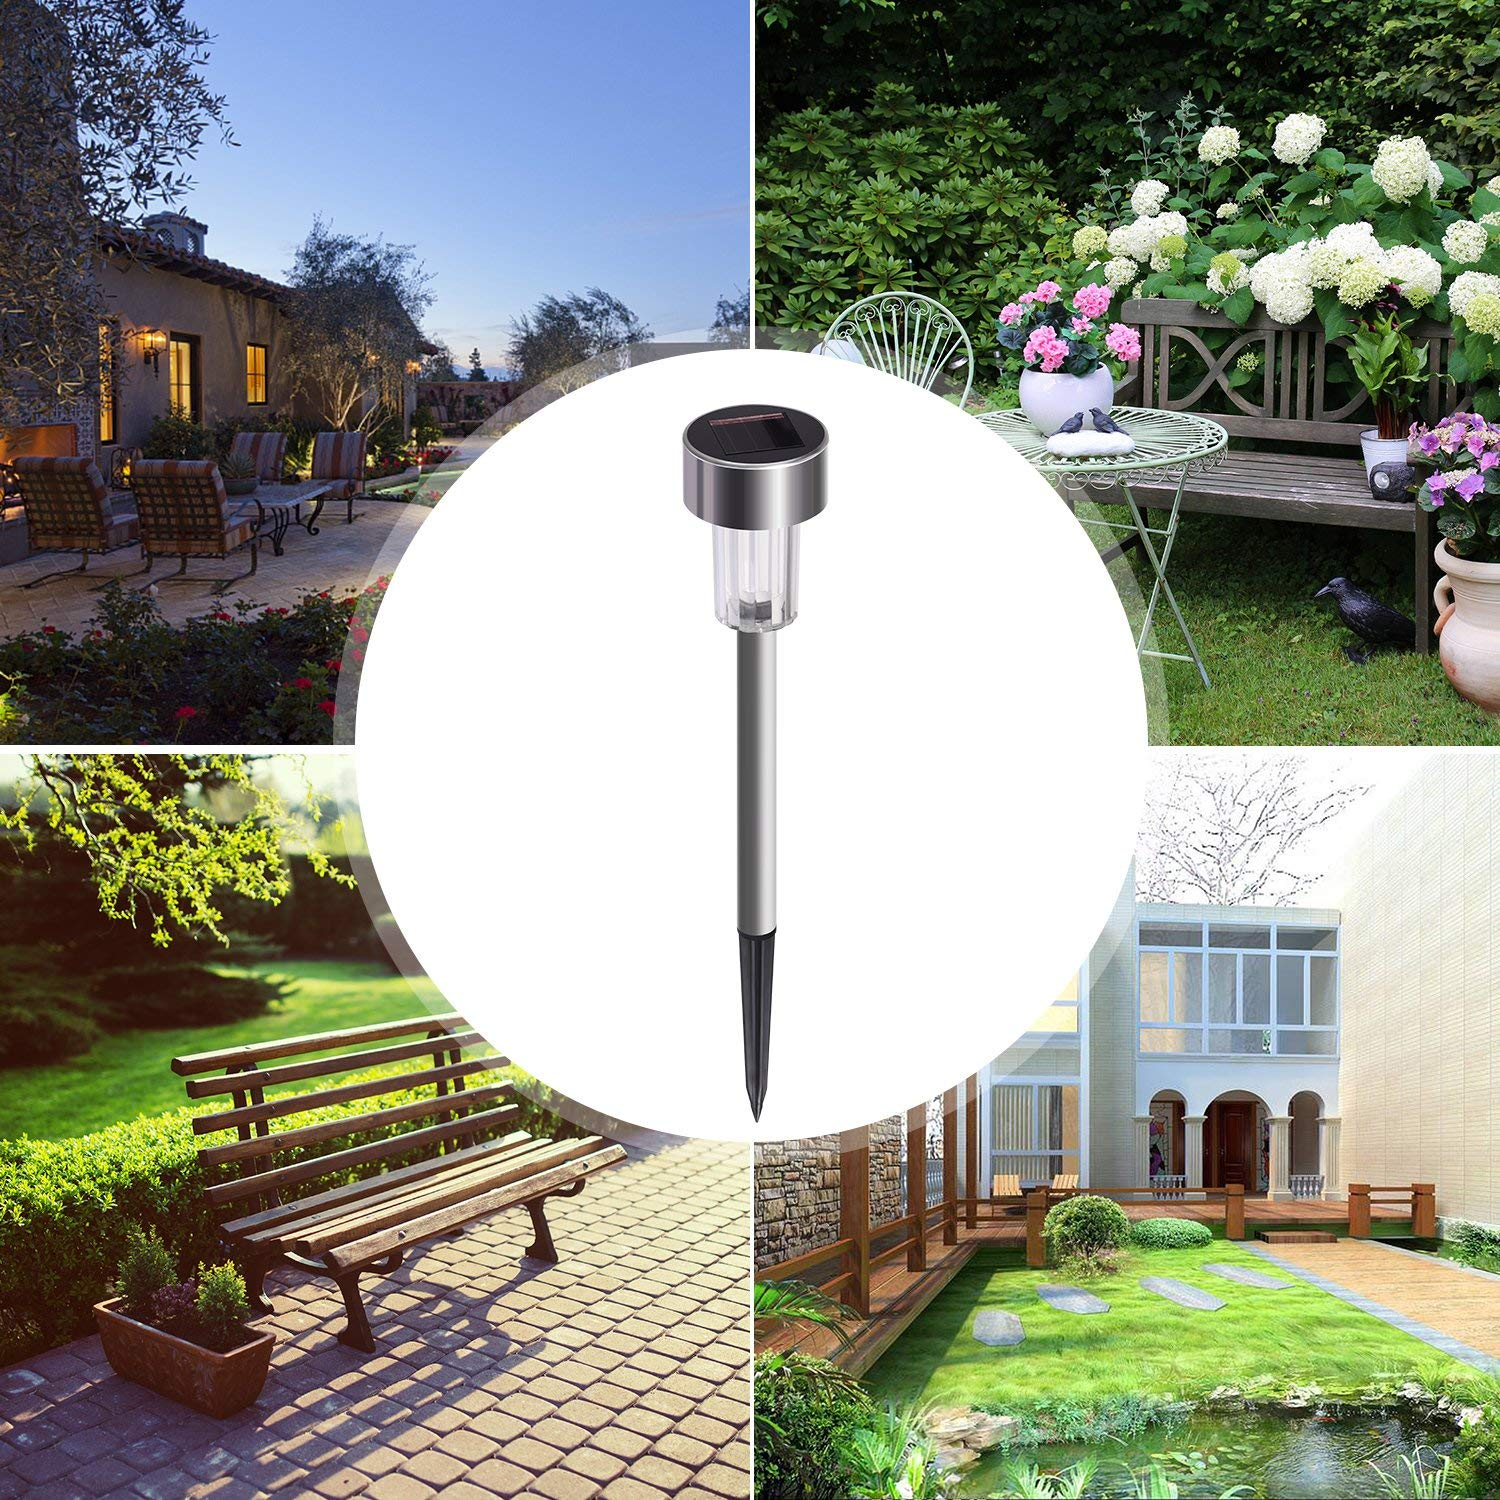 Sunnest Solar Garden Lights Outdoor 12Pack Stainless Steel Solar Pathway  Lights, Outdoor Landscape Lighting For Lawn/Patio/Yard/Walkway/Driveway  SG T9285